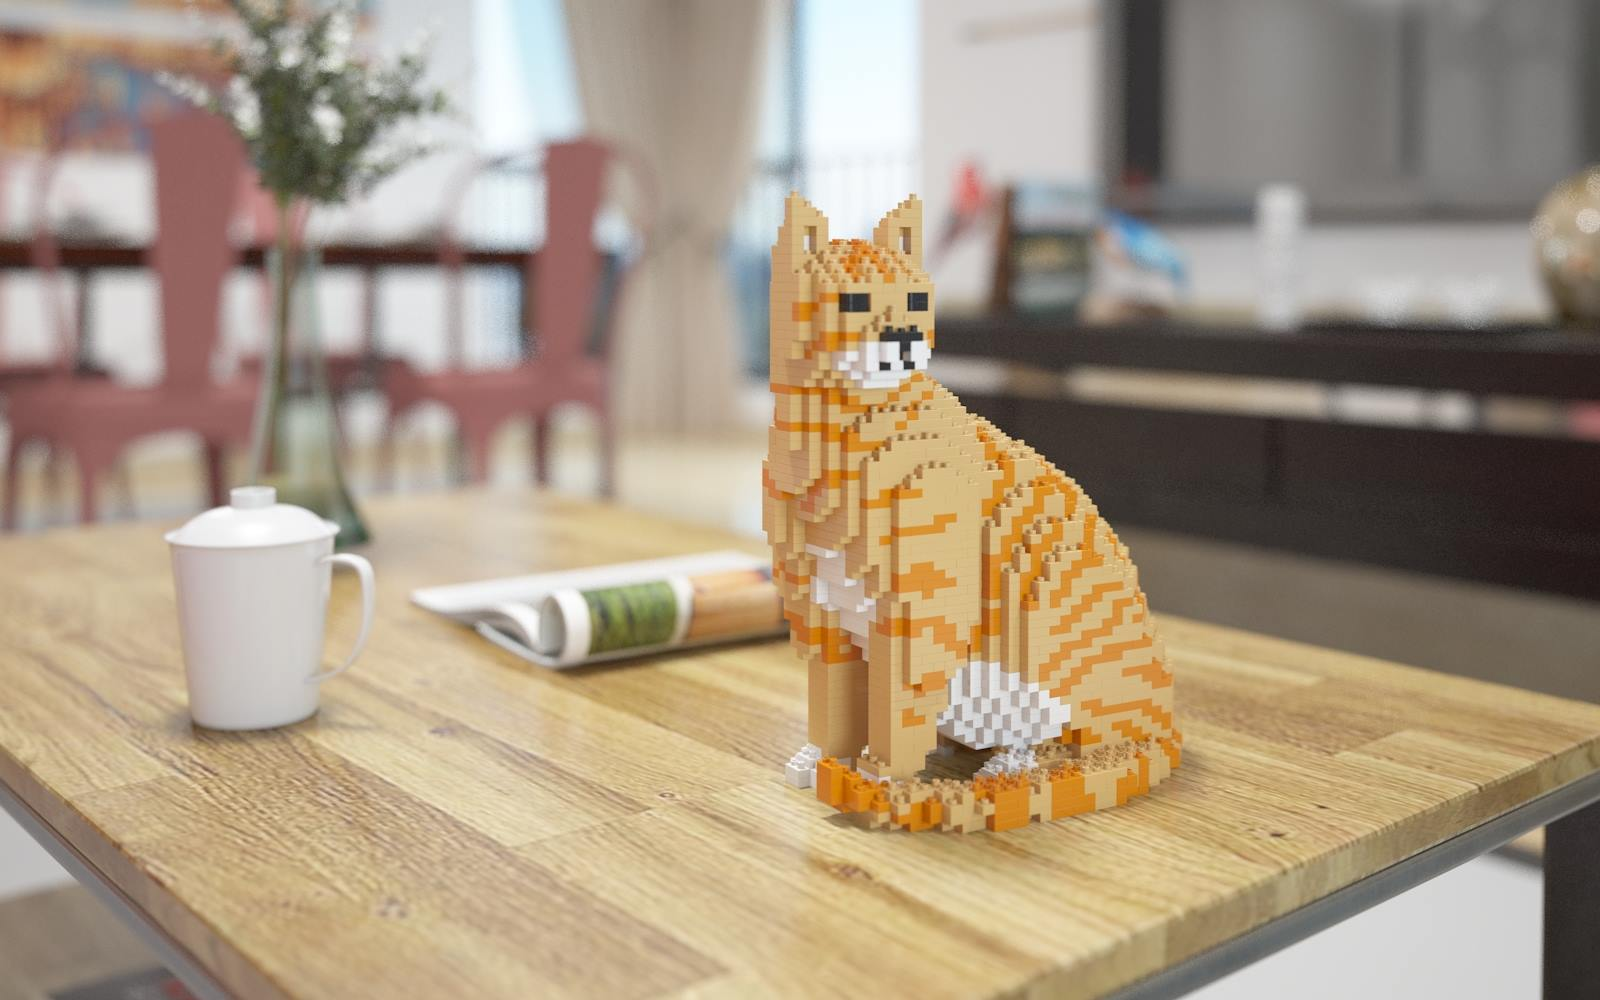 These incredible 'Lego' cats are a decent replacement for the real thing